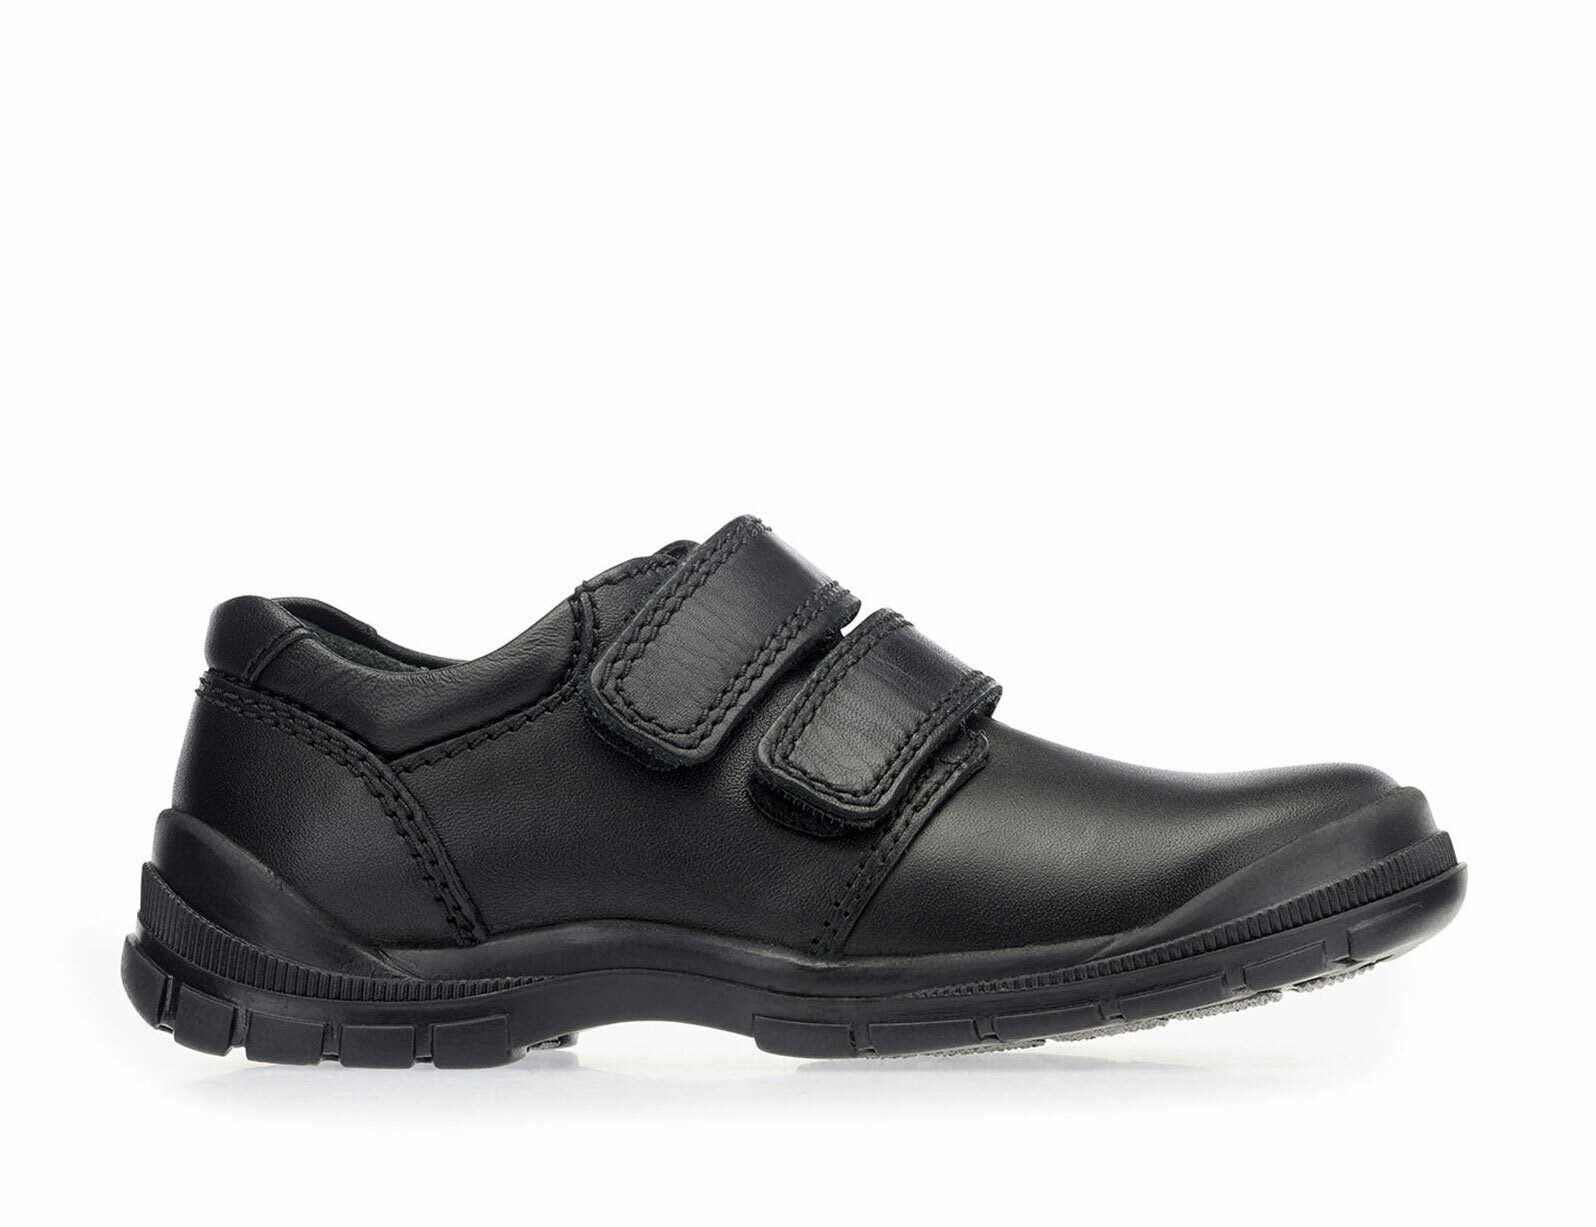 Size 11 School Shoes for Girls & Boys